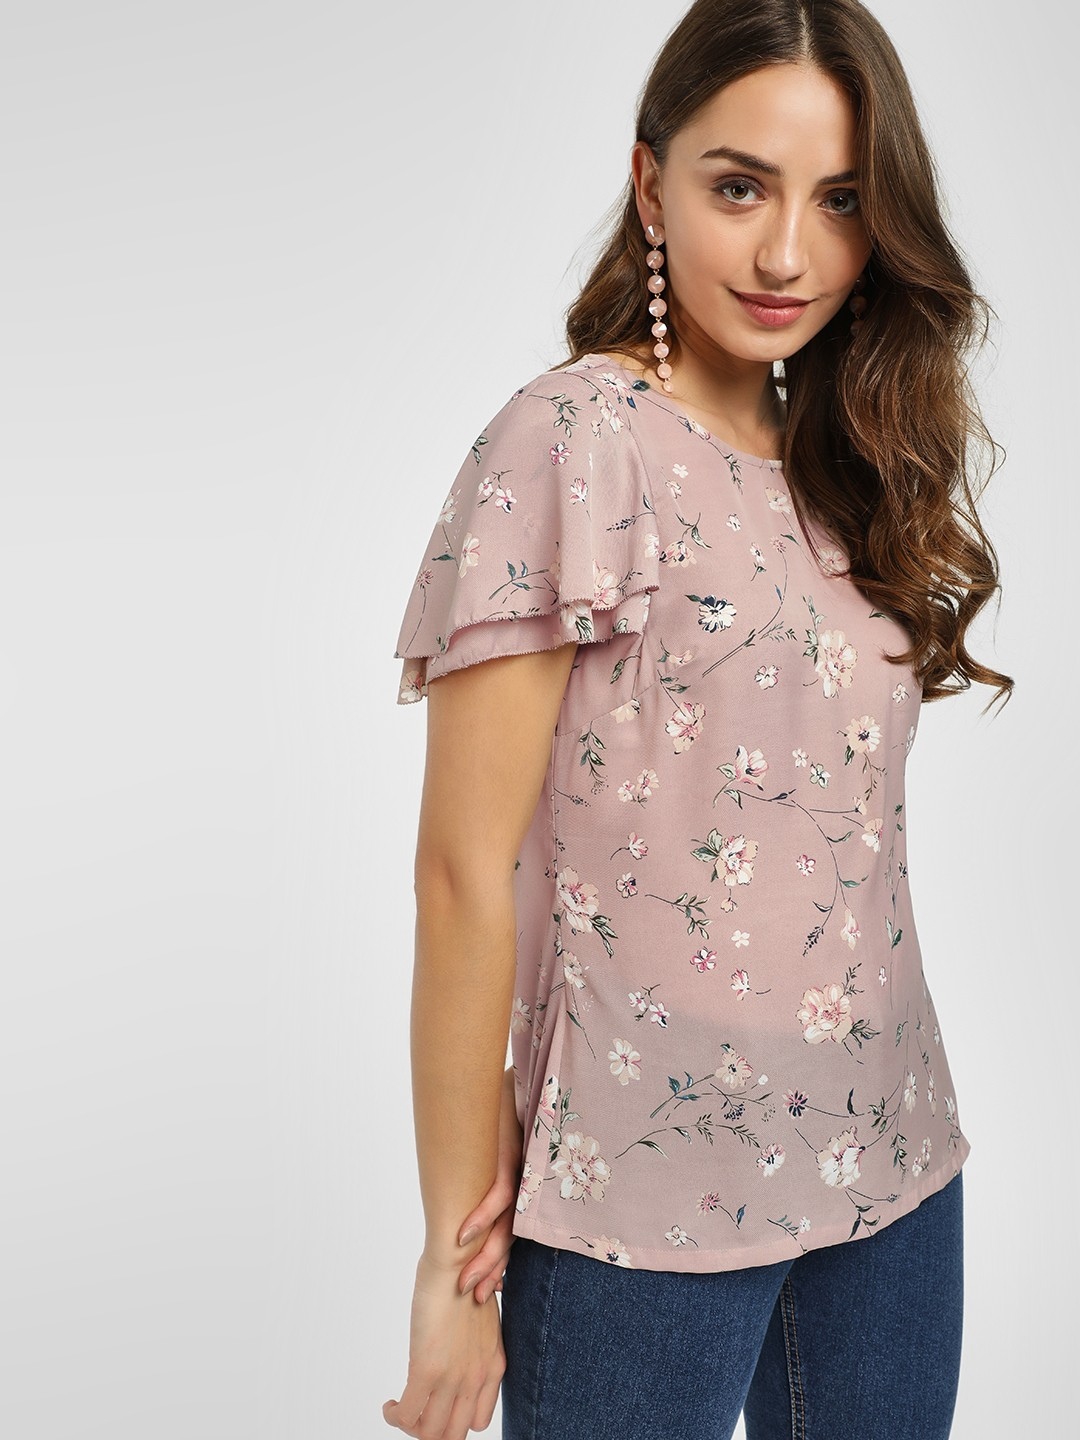 PostFold Blush Dainty Floral Layered Sleeves Top 1